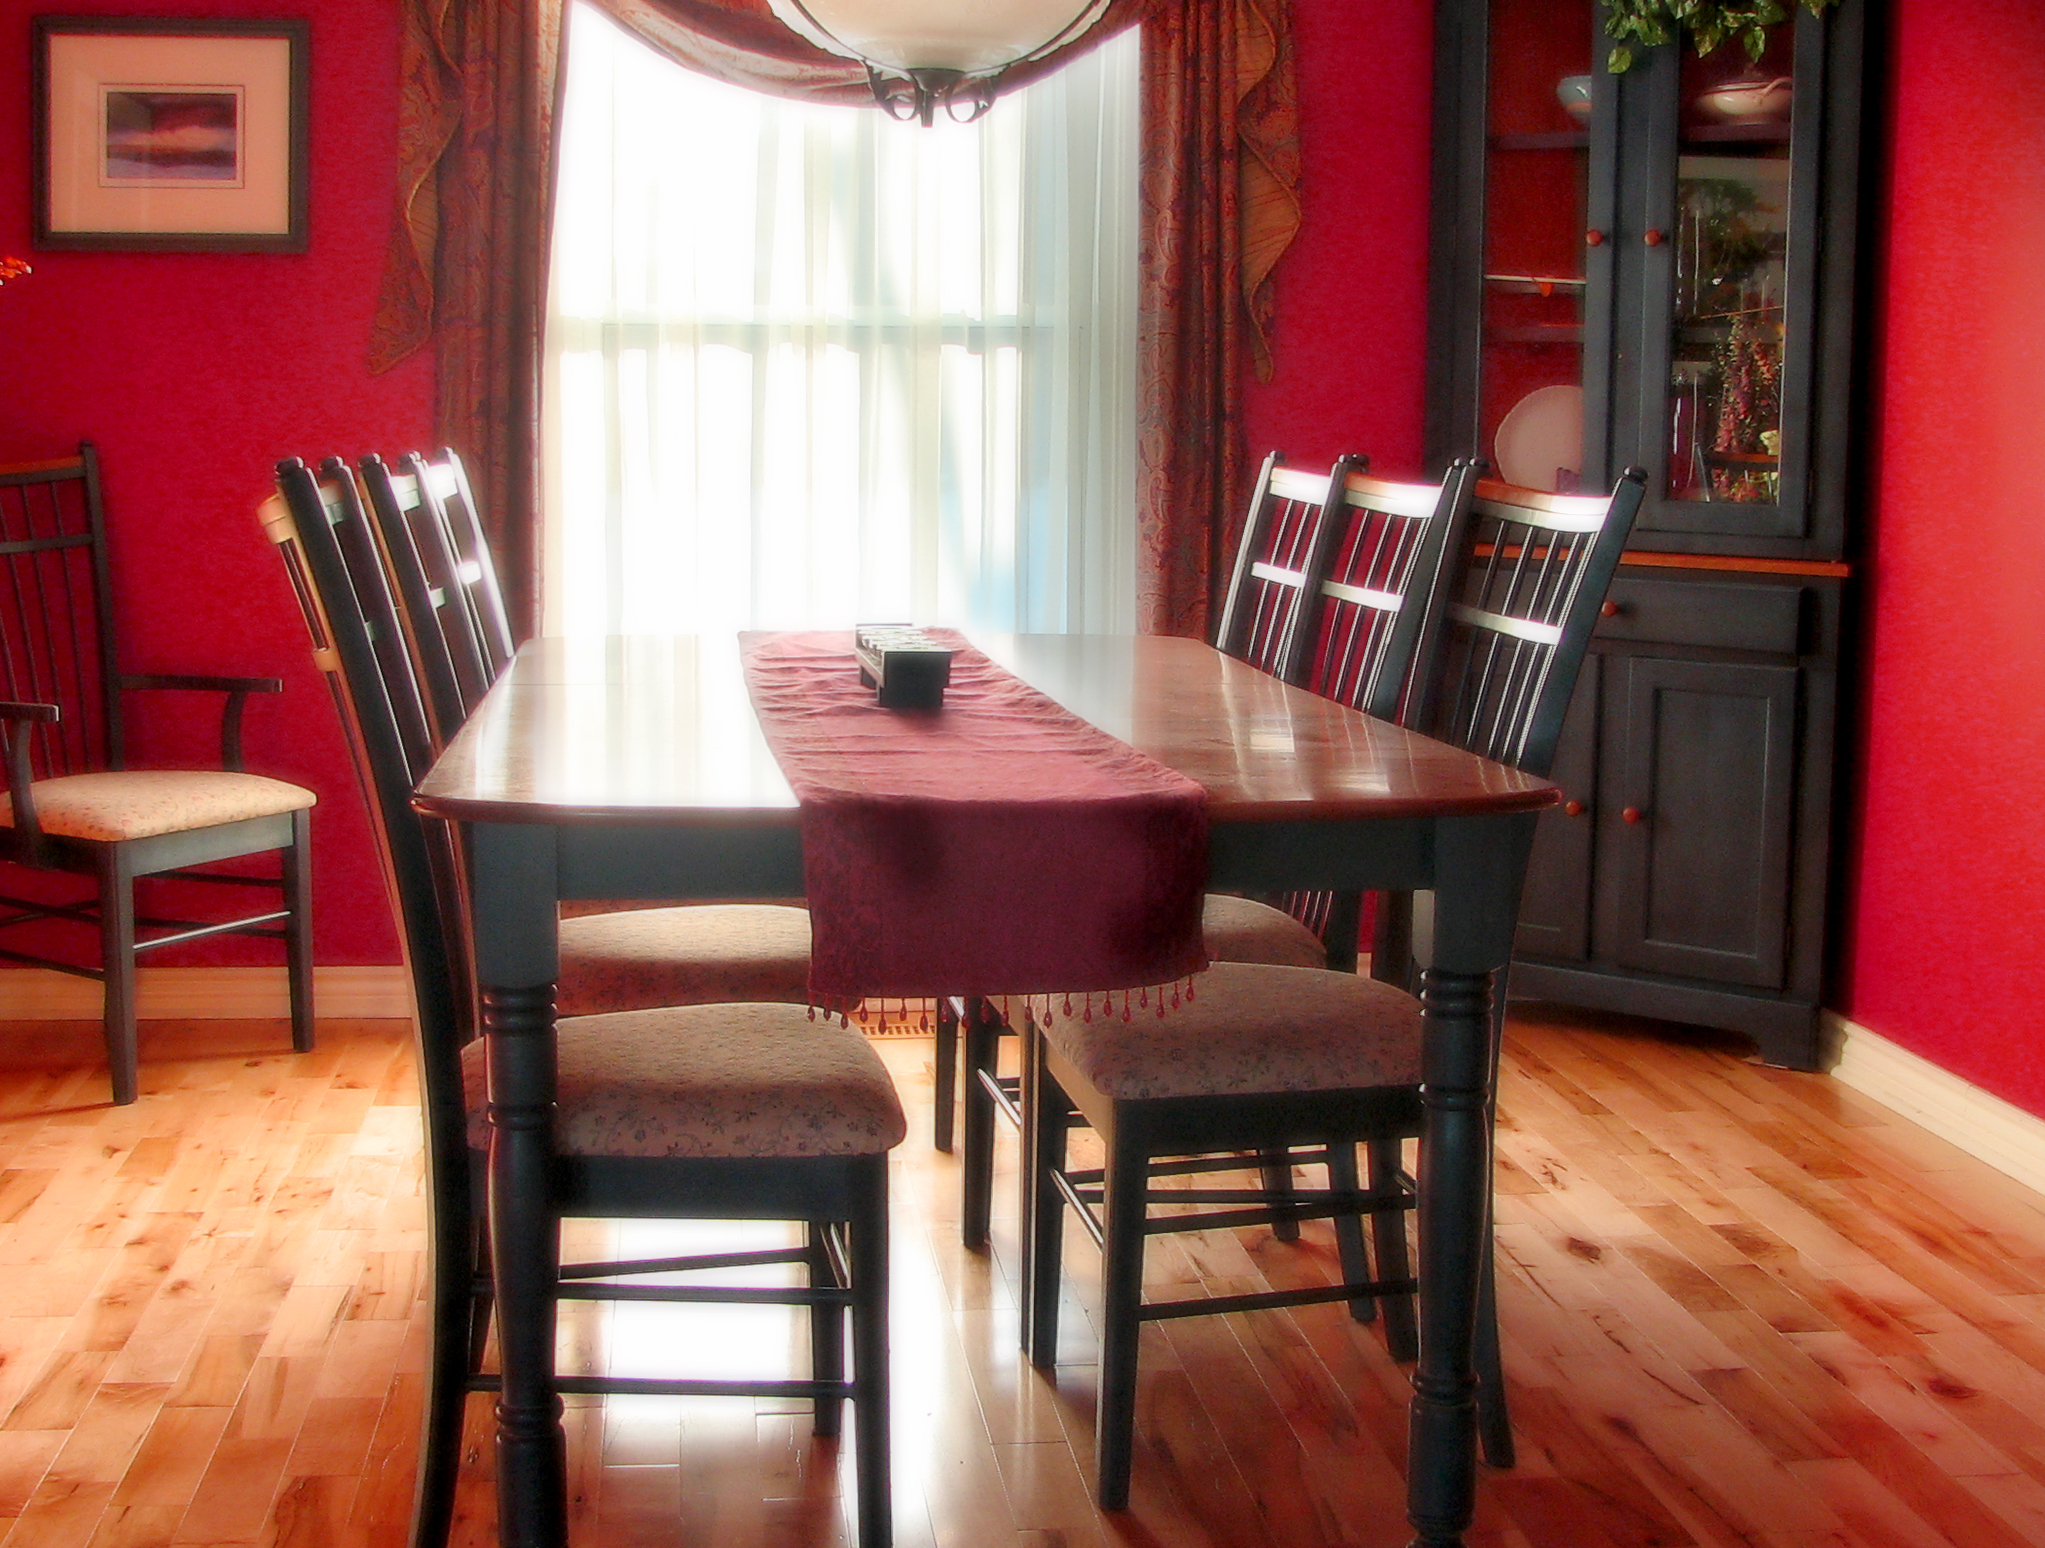 Remarkable Dinner Table and Chairs 2045 x 1548 · 2285 kB · jpeg